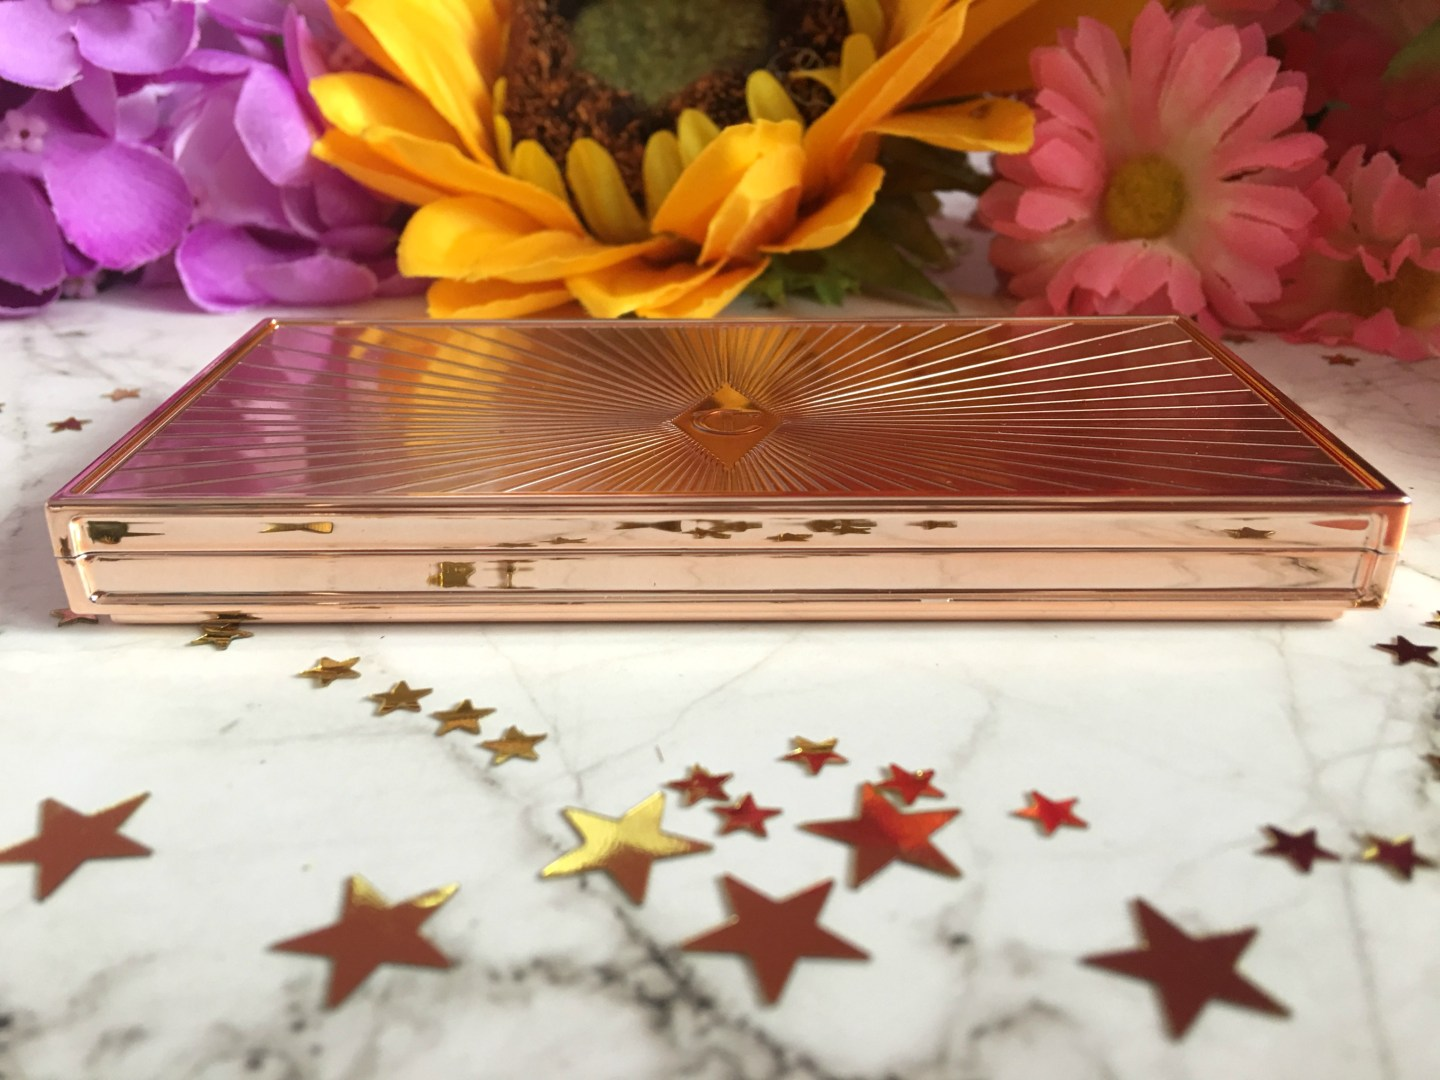 Charlotte Tilbury Filmstar Bronze and Glow Musings of a Makeup Junkie (2)